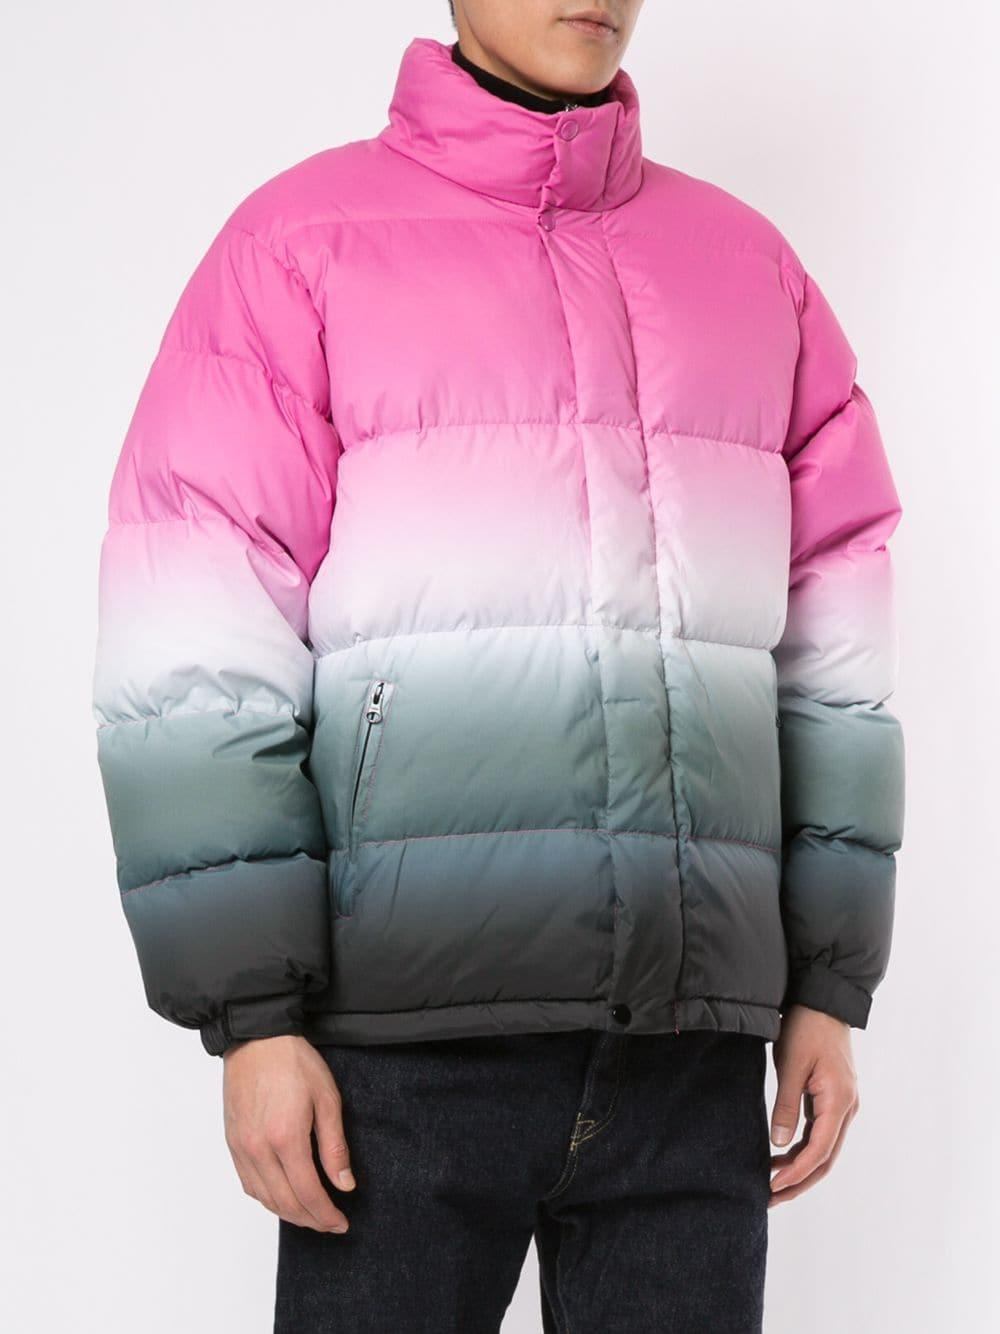 Supreme Gradient Puffer Jacket In Pink For Men - Lyst